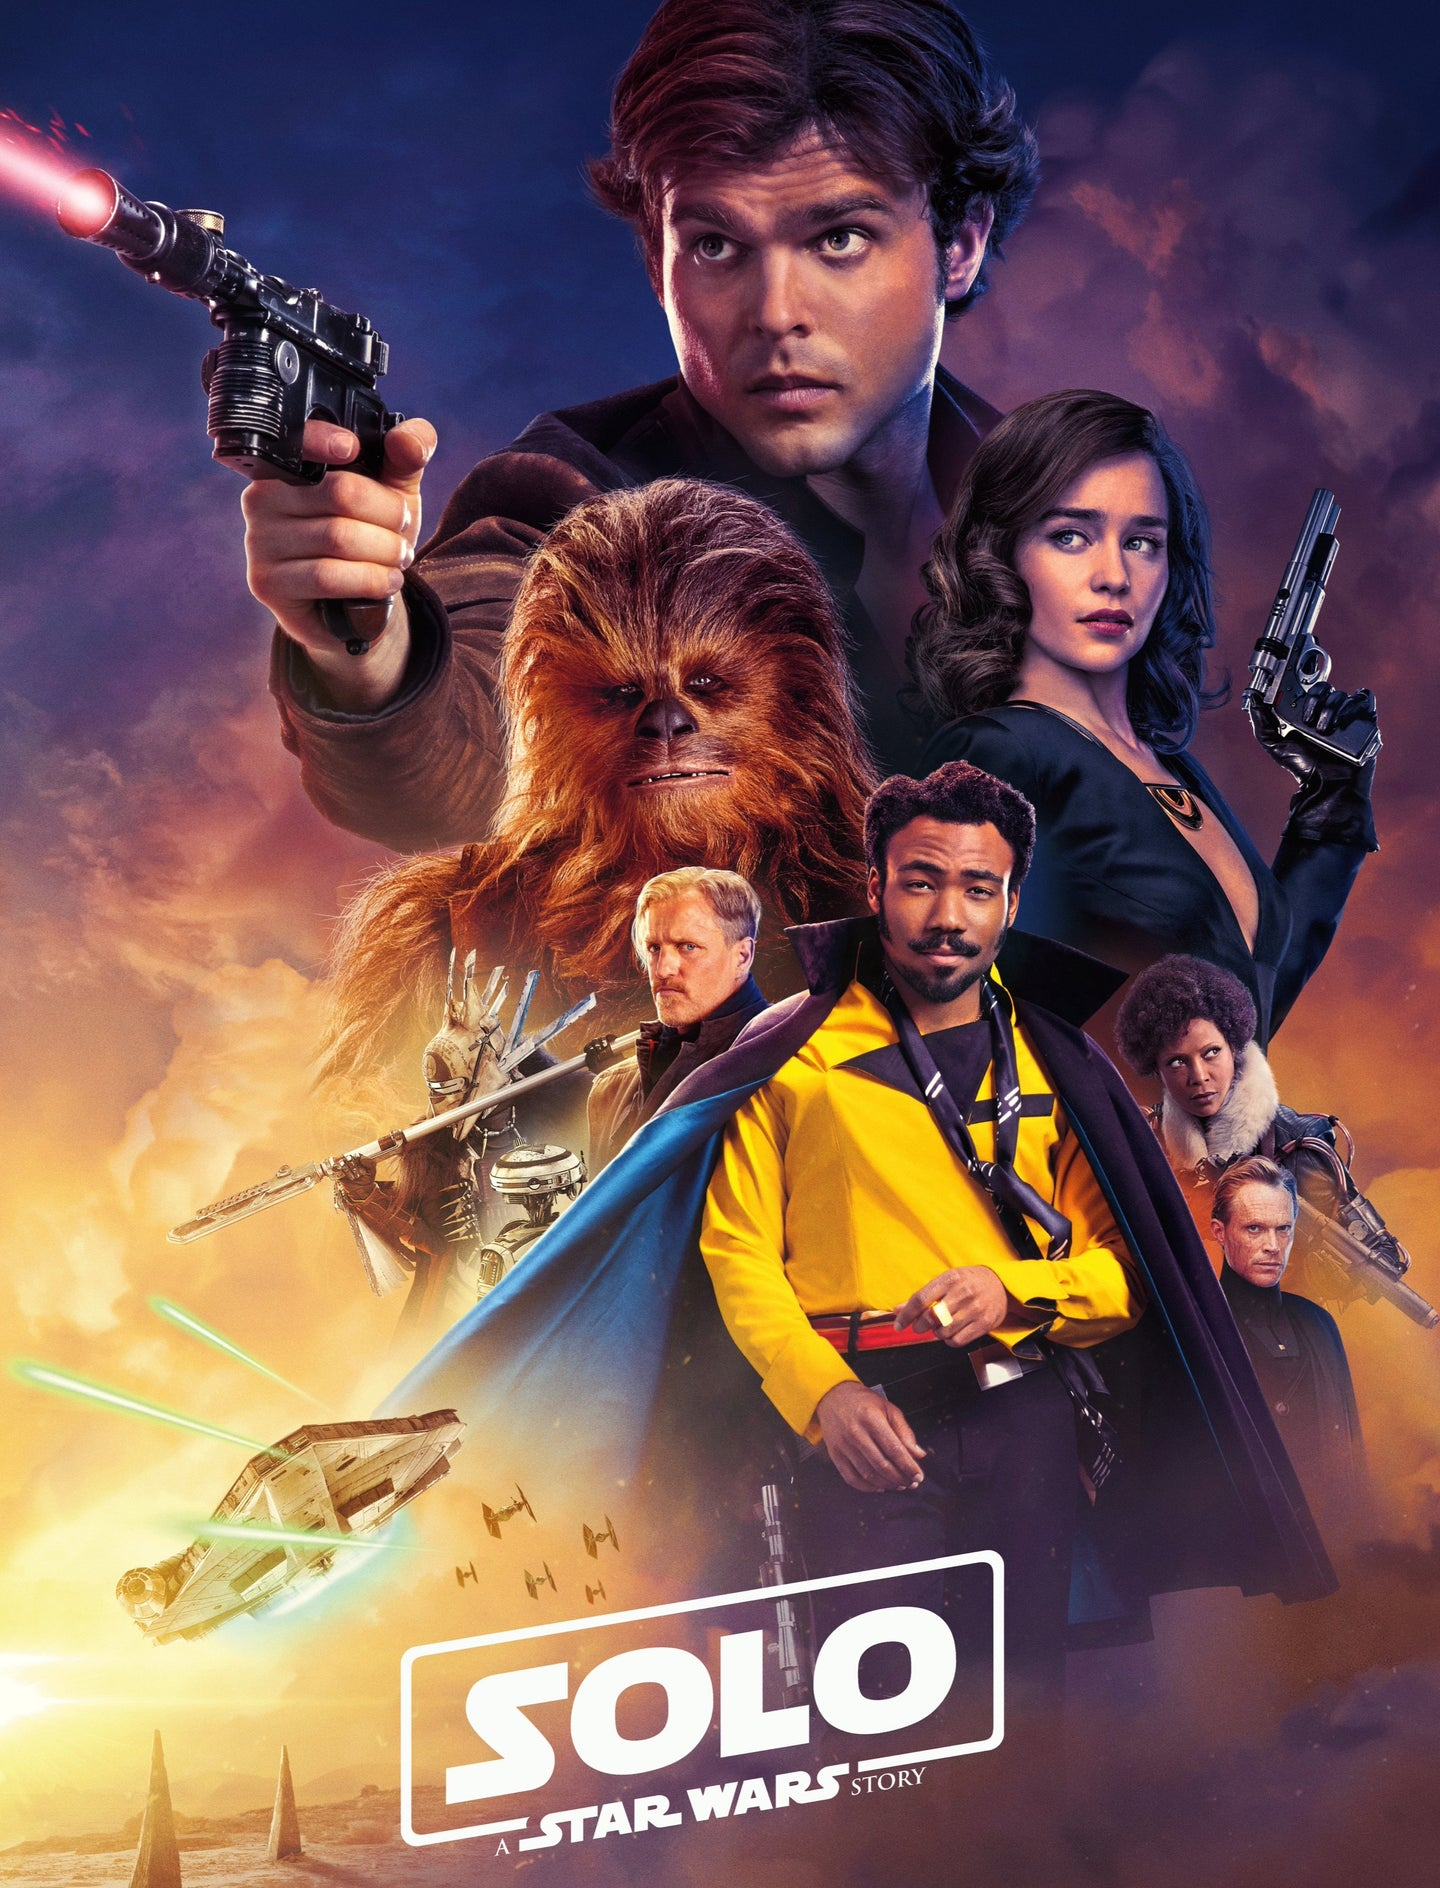 Solo: A Star Wars Story (2018) Google Play HD code